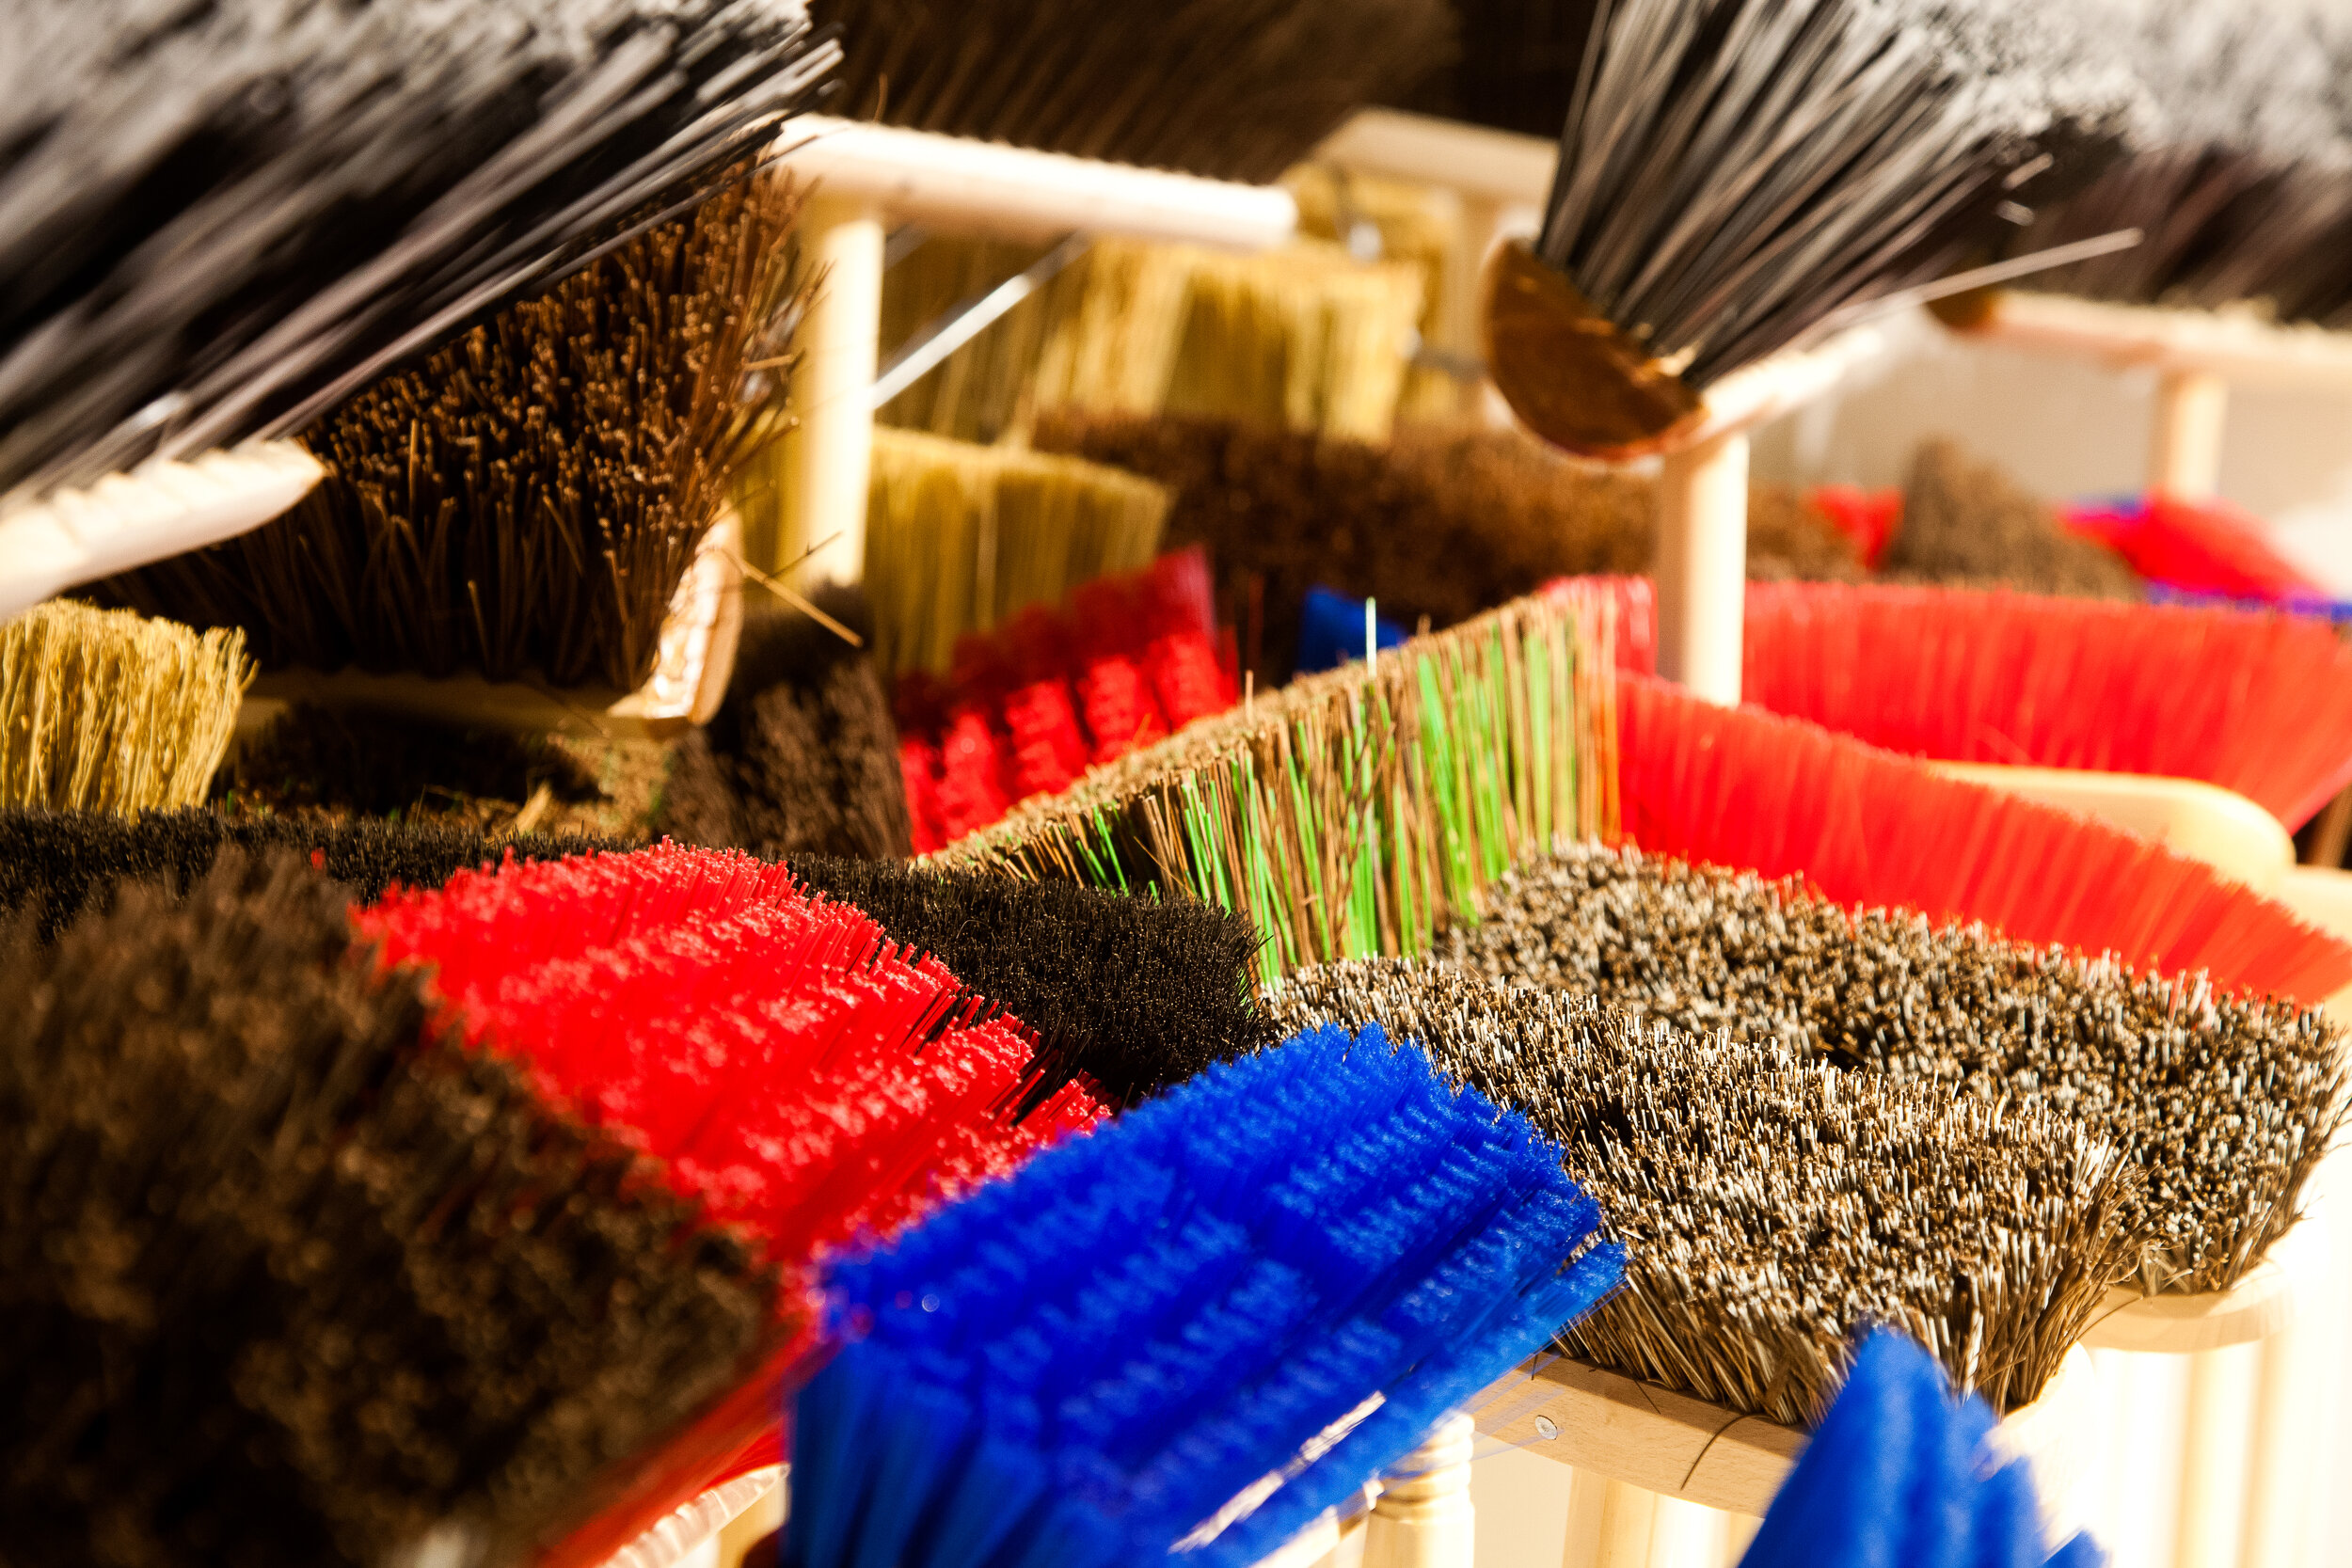 A selection of Hillbrush brooms